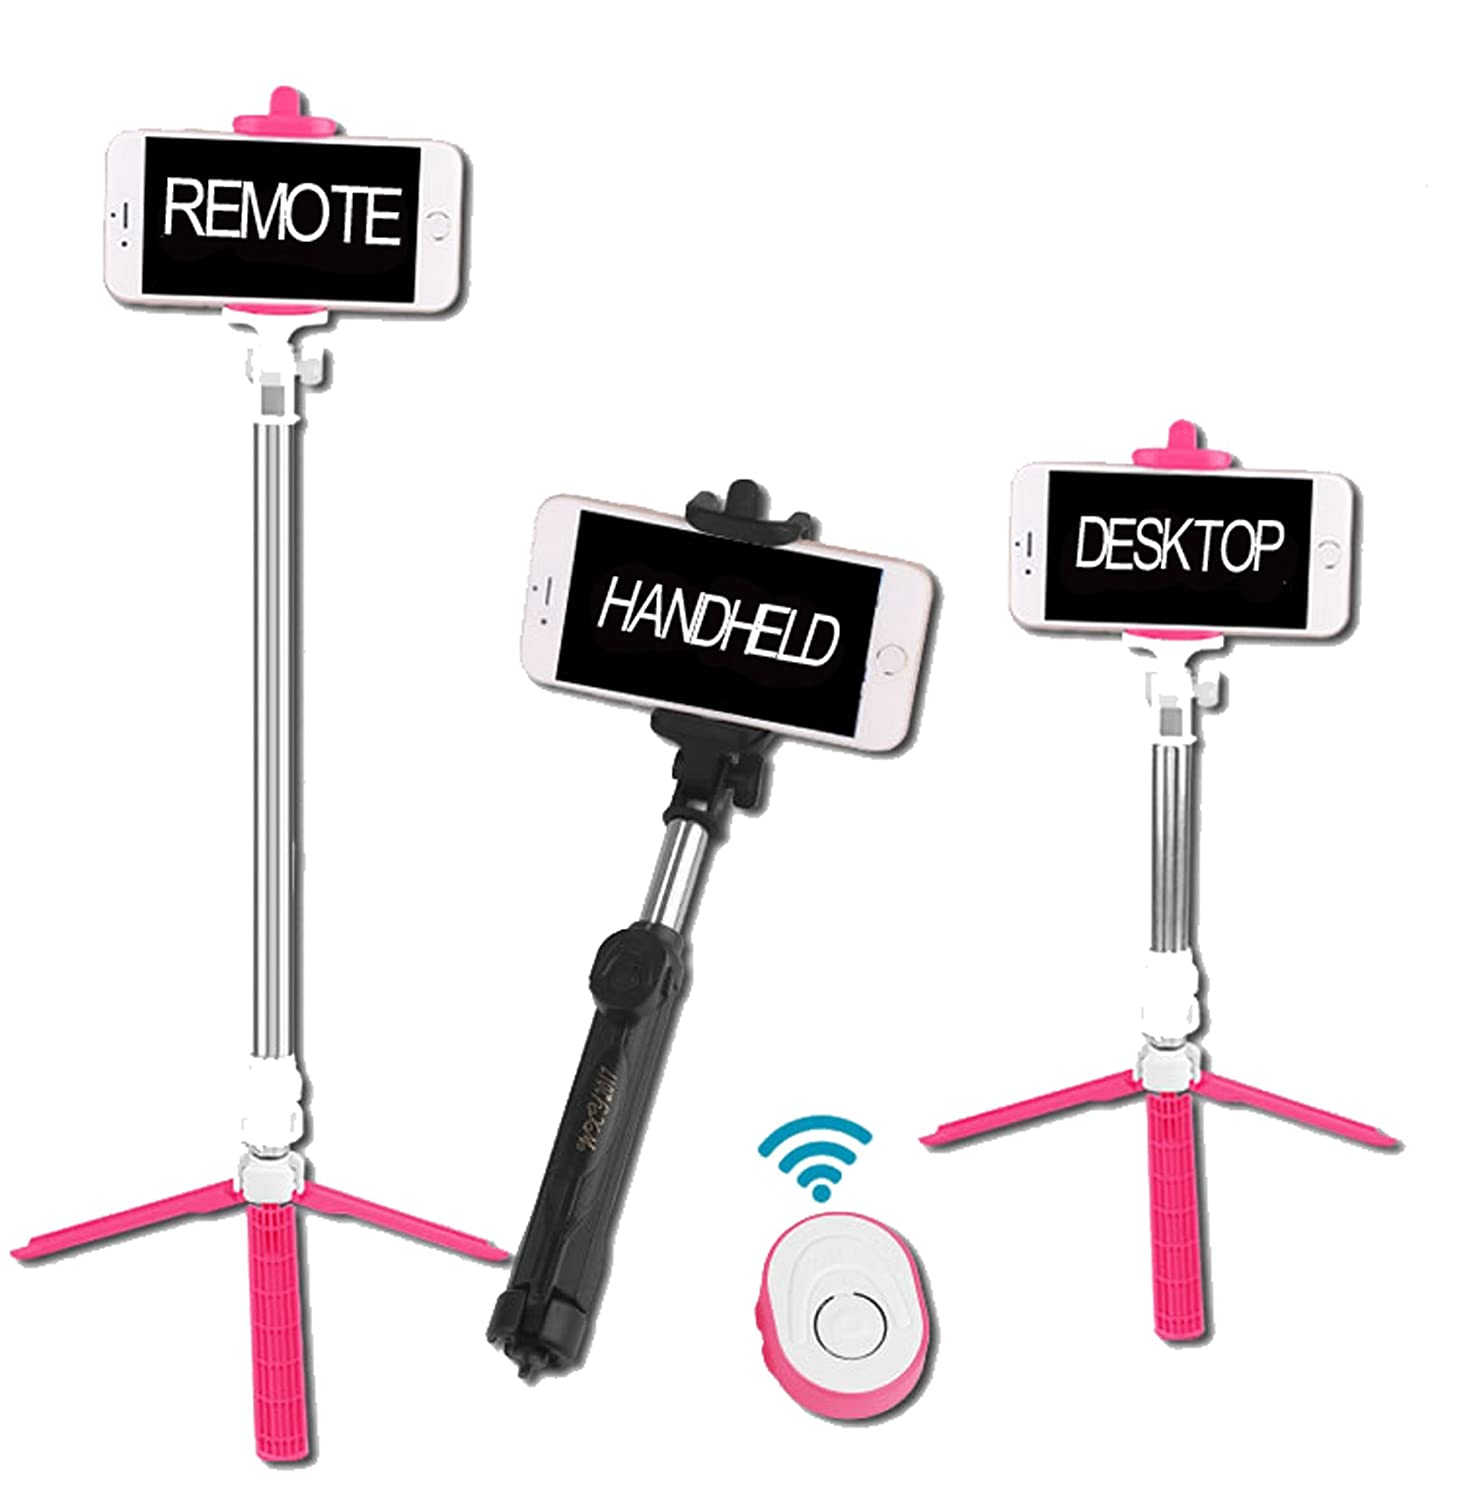 Aiiot Universal Fashion Design Portable Selfie Stick Foldable Tripod Stand Super Light with Free Bluetooth Remote Shutter For Phones Width Up to 3.5 Inch (Pink)